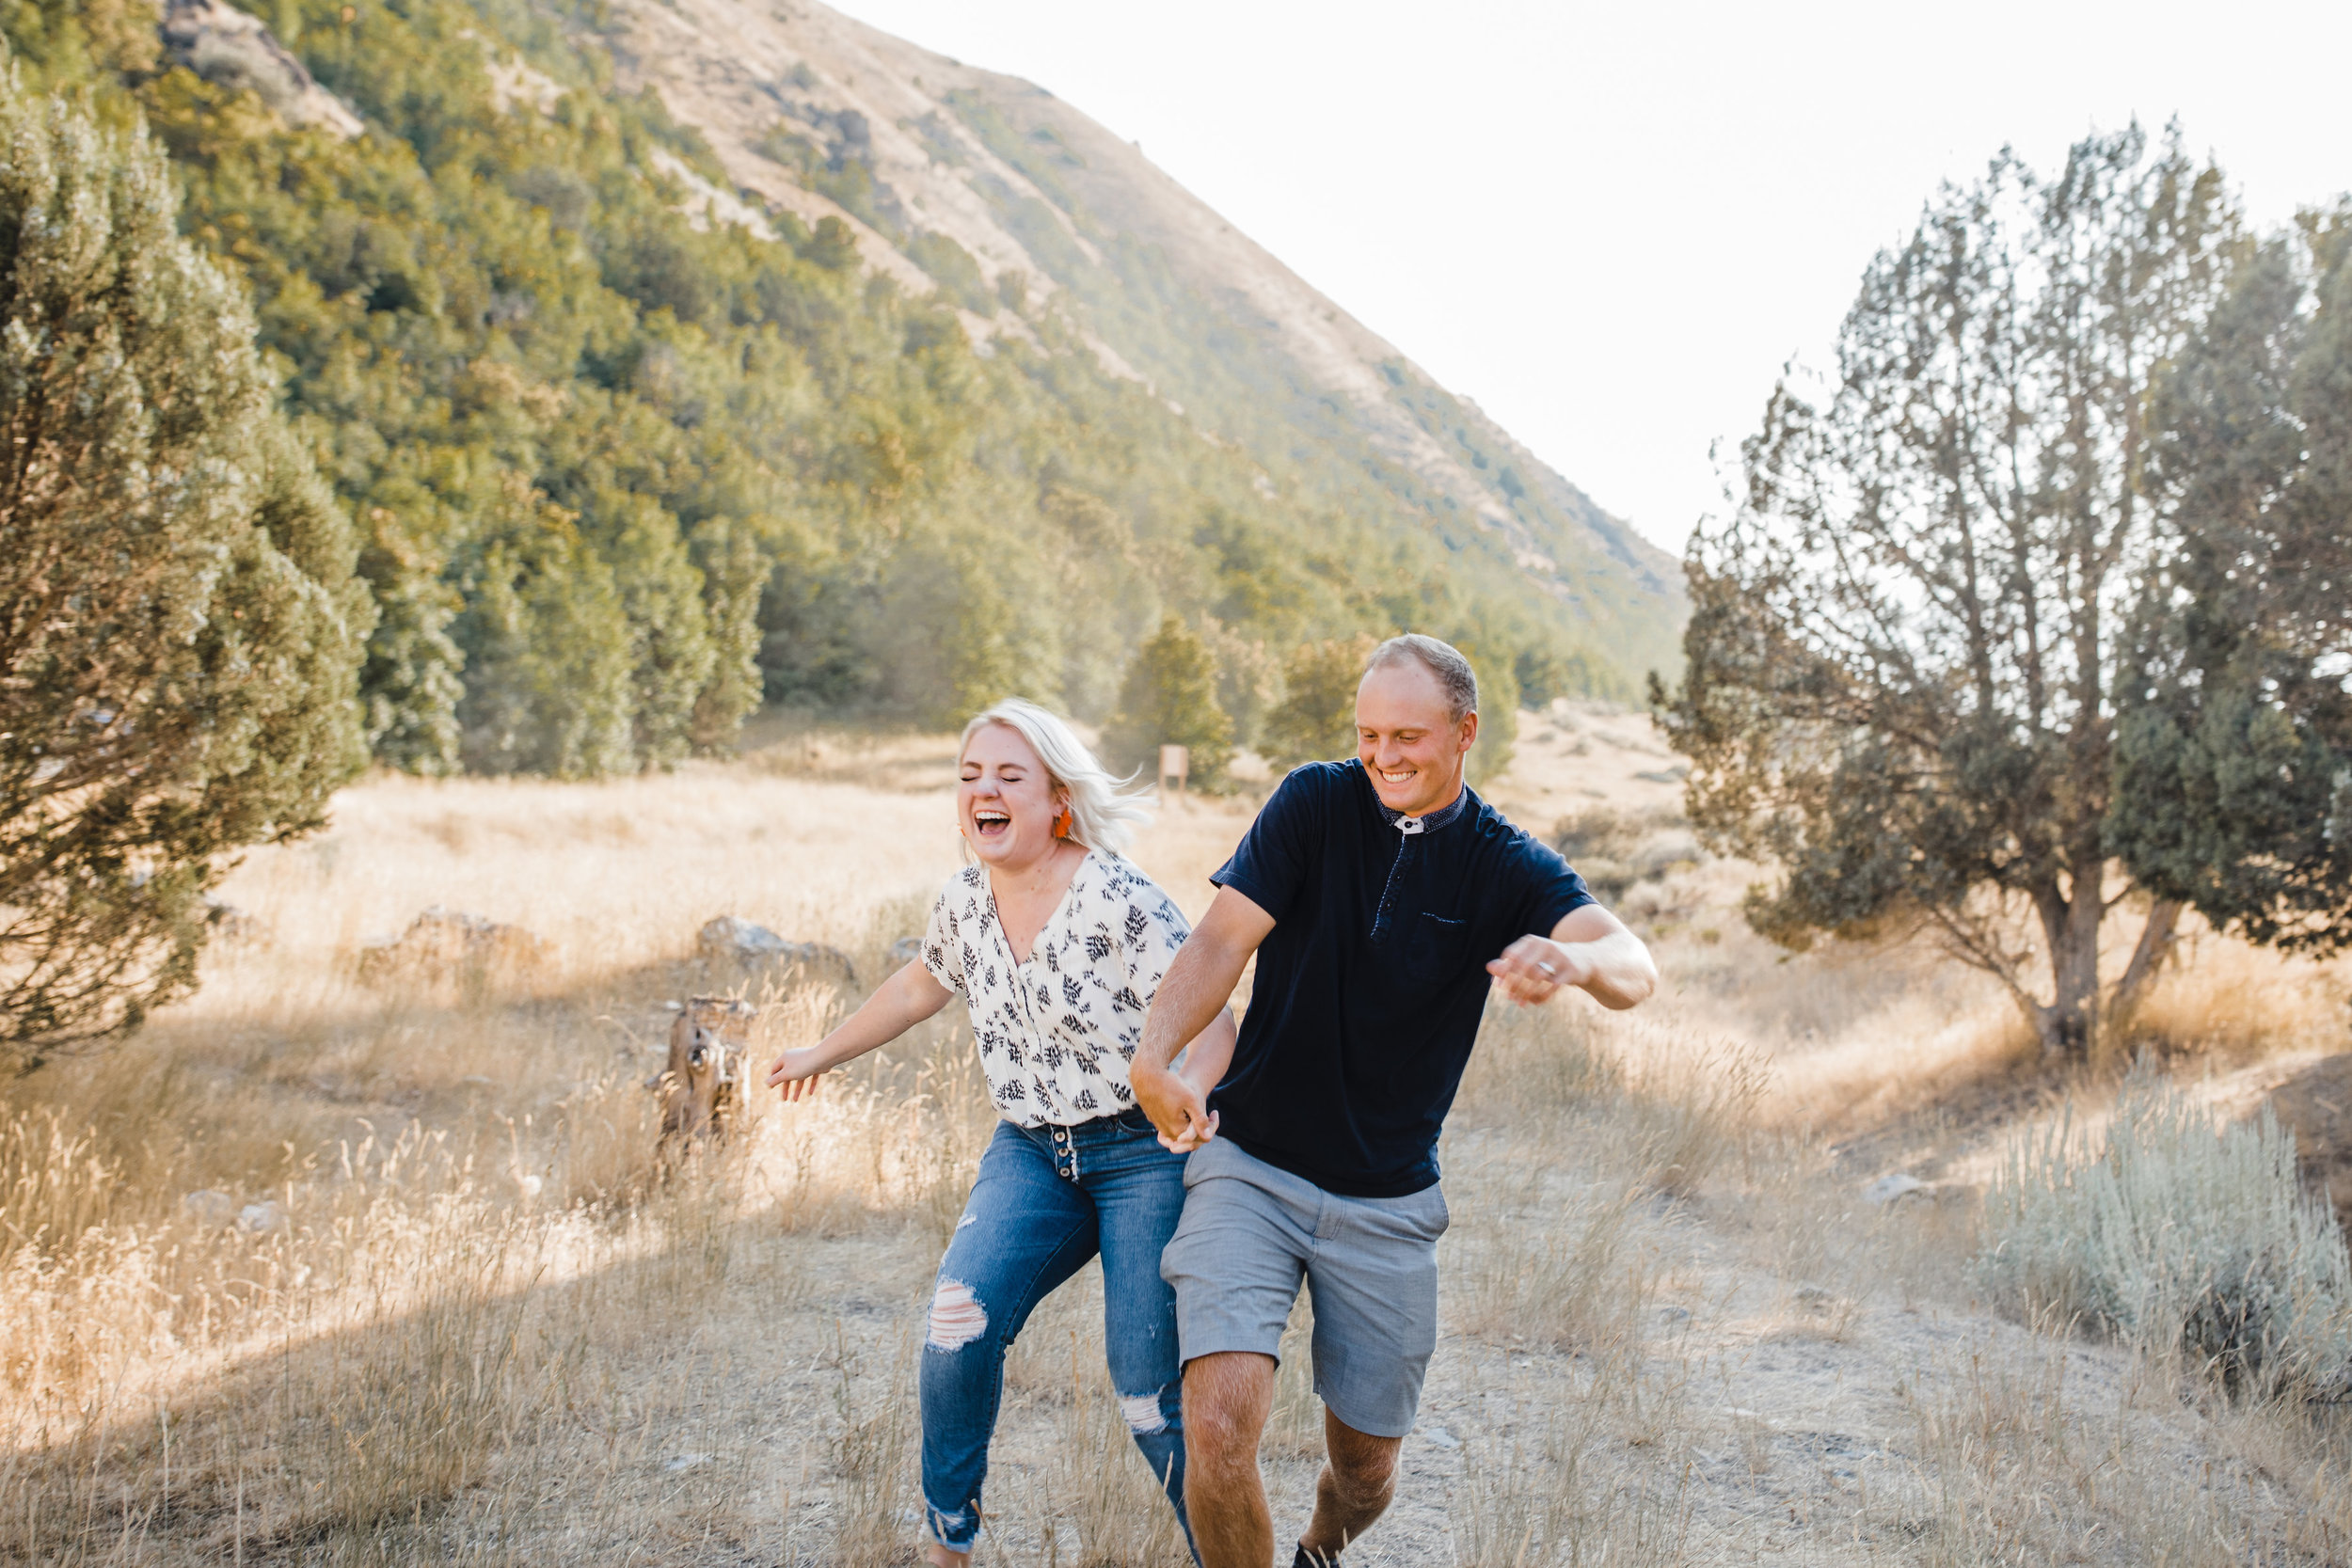 cache valley professional couples photographer best laughing holding hands mountain backdrop running nose crinkle